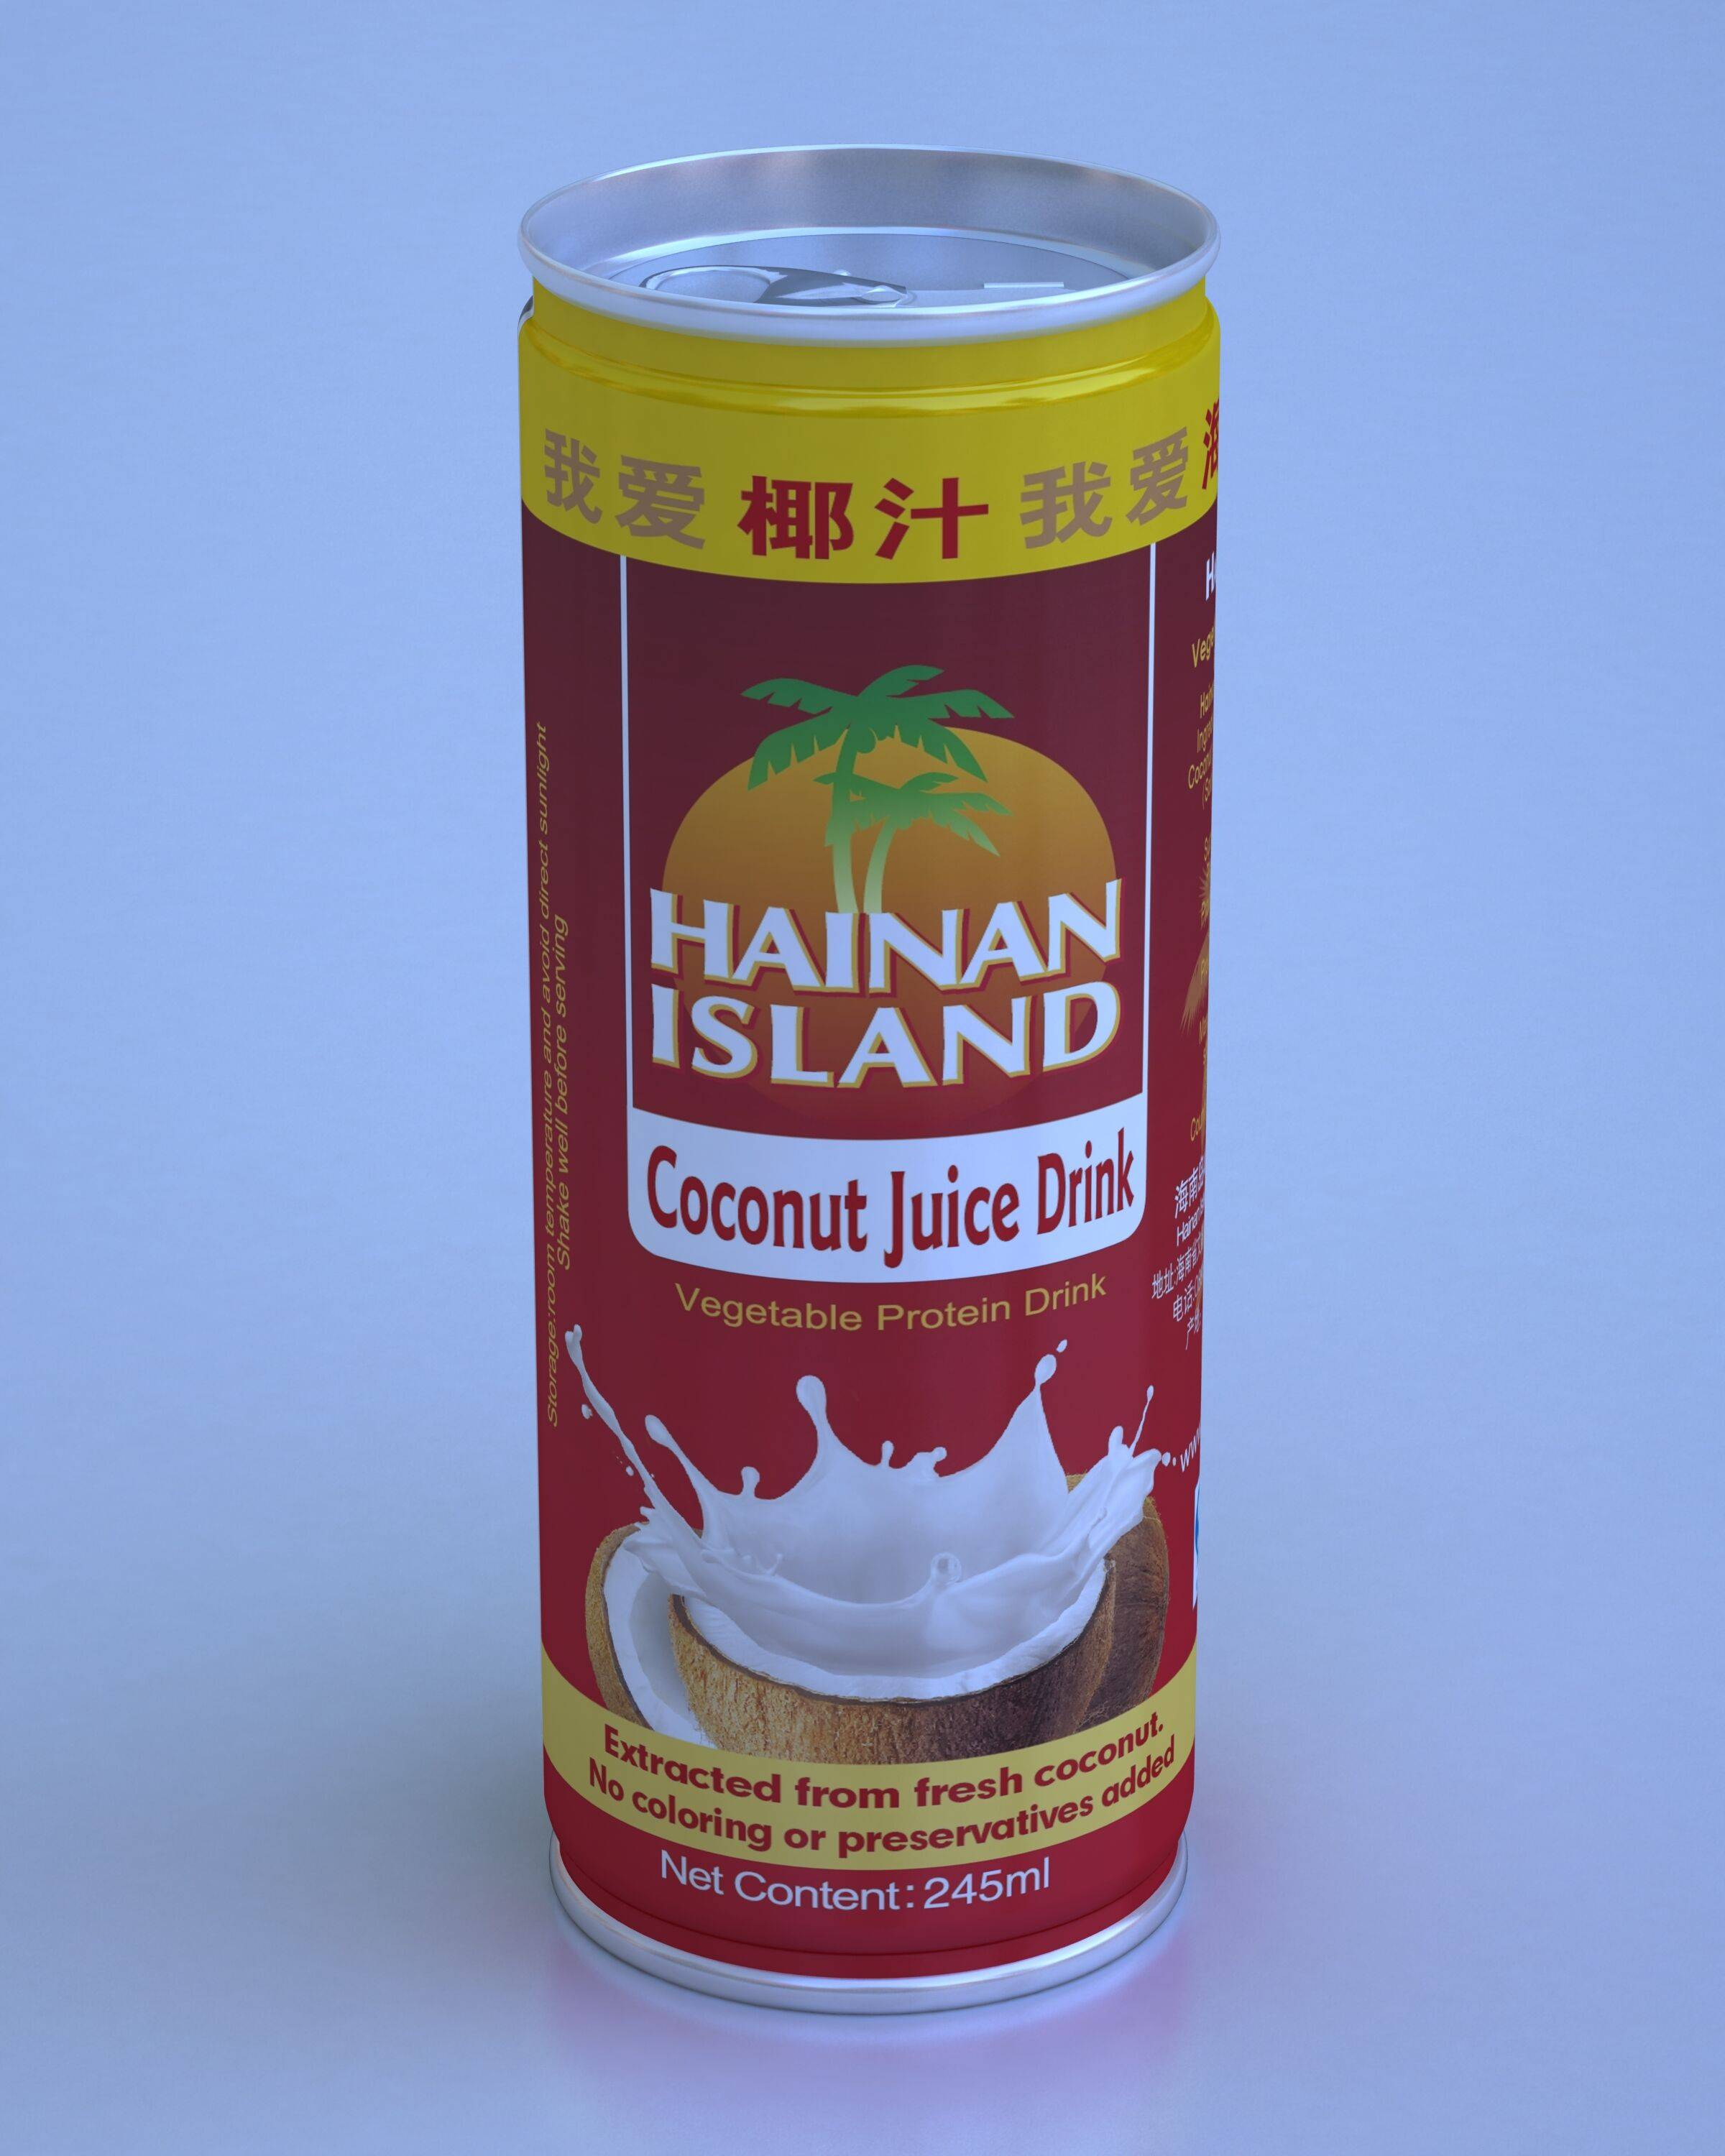 Coconut Juice Drink (245ml), Natual taste, no colorings, no preservatives